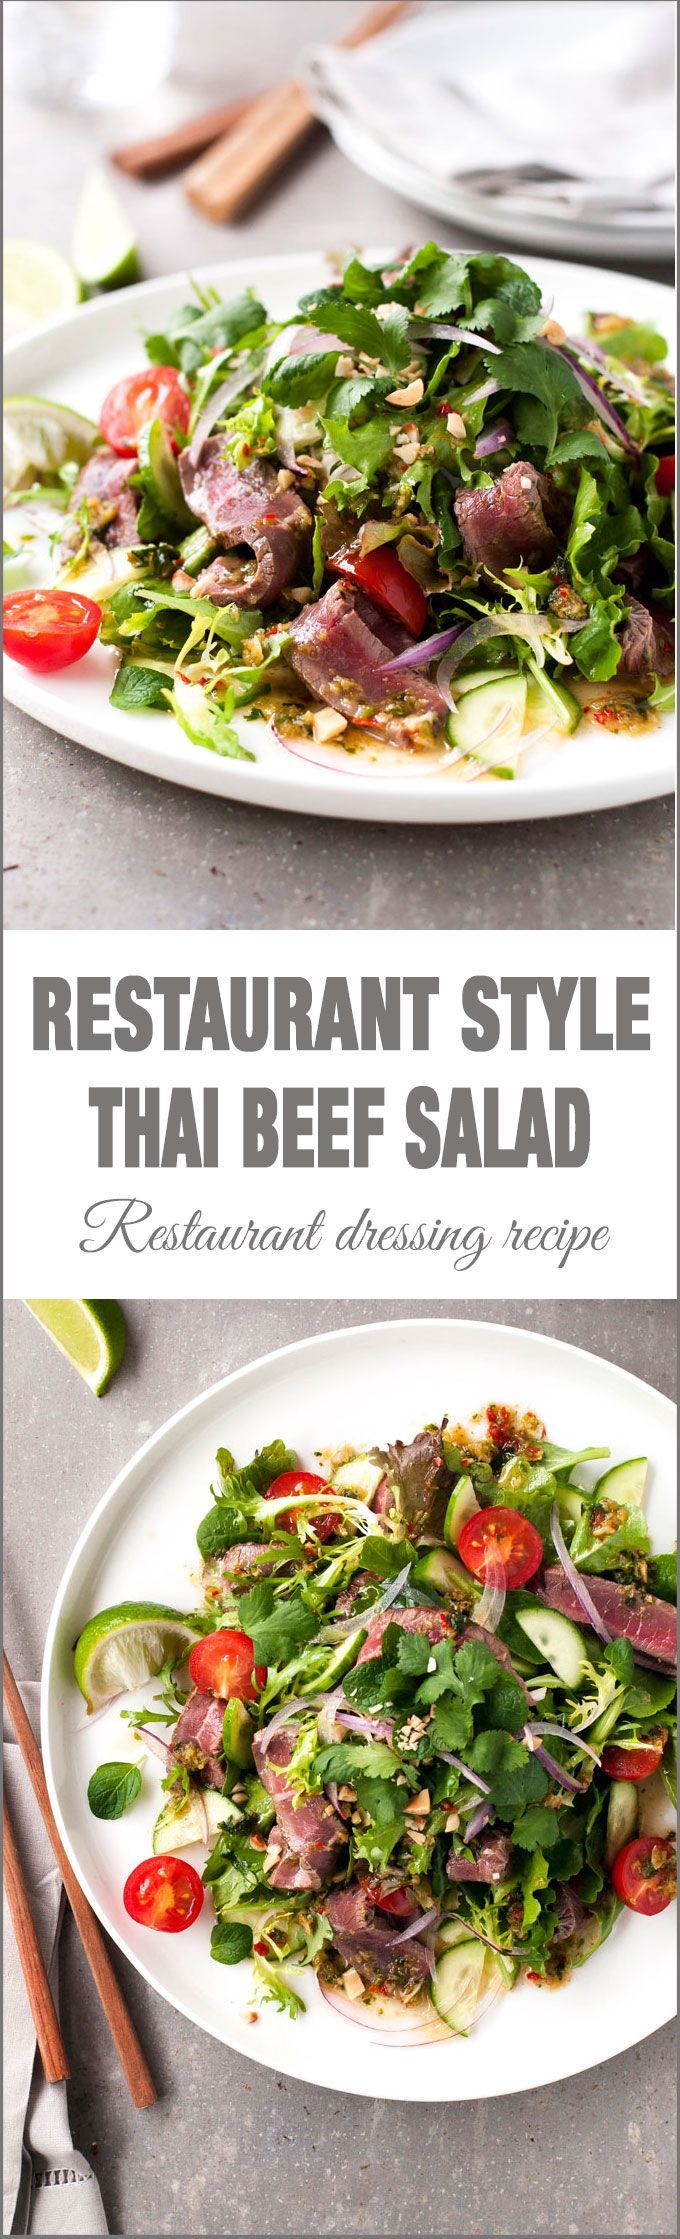 Thai Beef Salad (Restaurant Style) - one little change to the usual recipe to make a restaurant quality Thai Beef Salad. So happy to have this recipe I have looked for a good one forever...this one is authentic, but easy.